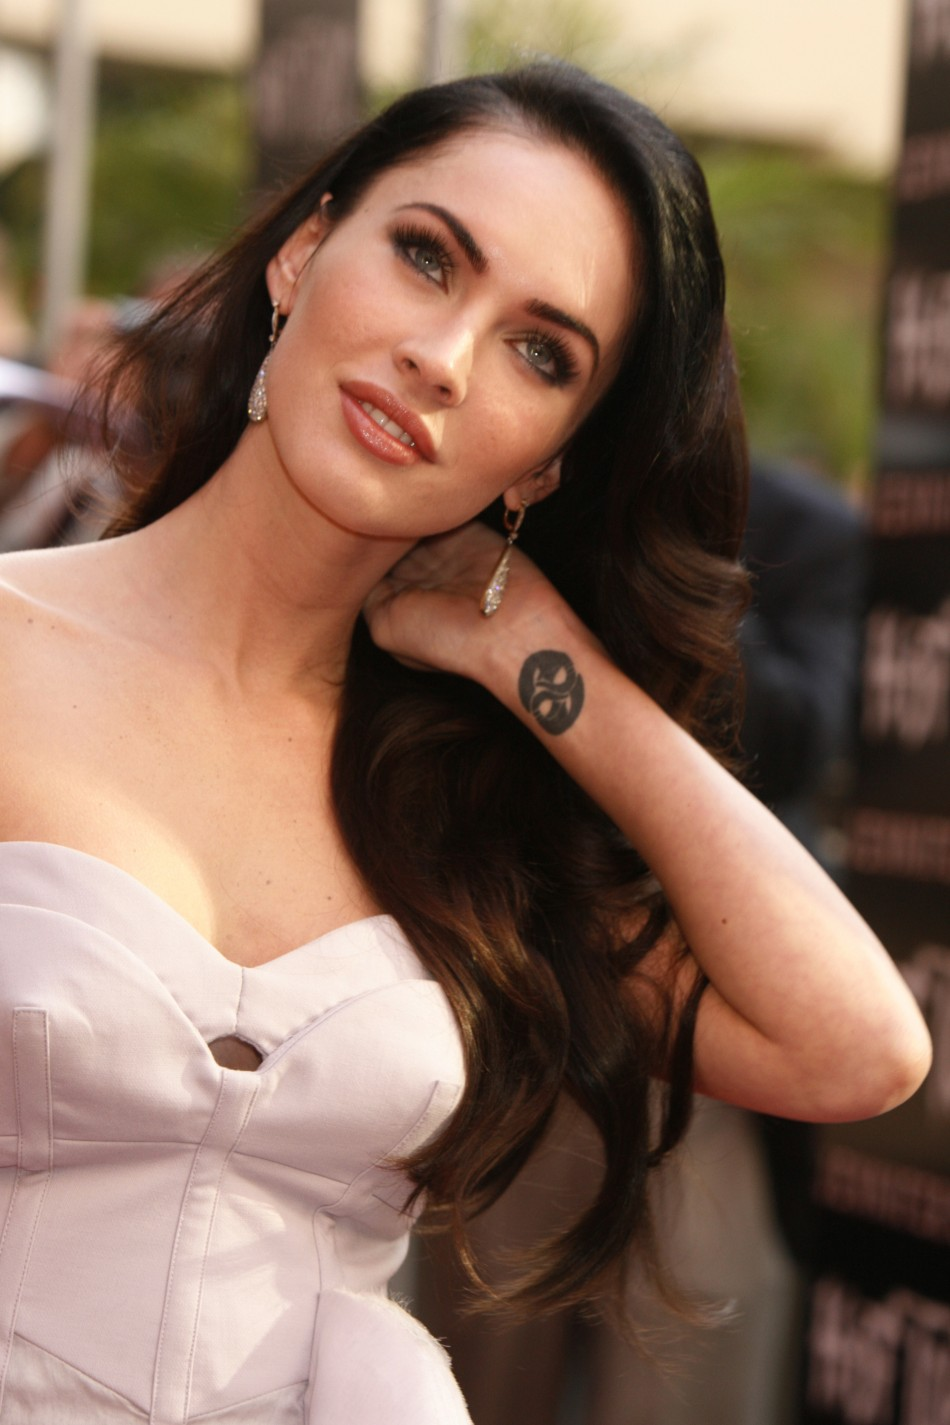 Megan Fox's Candid Confessions: Her Extreme Diet And Tattoos